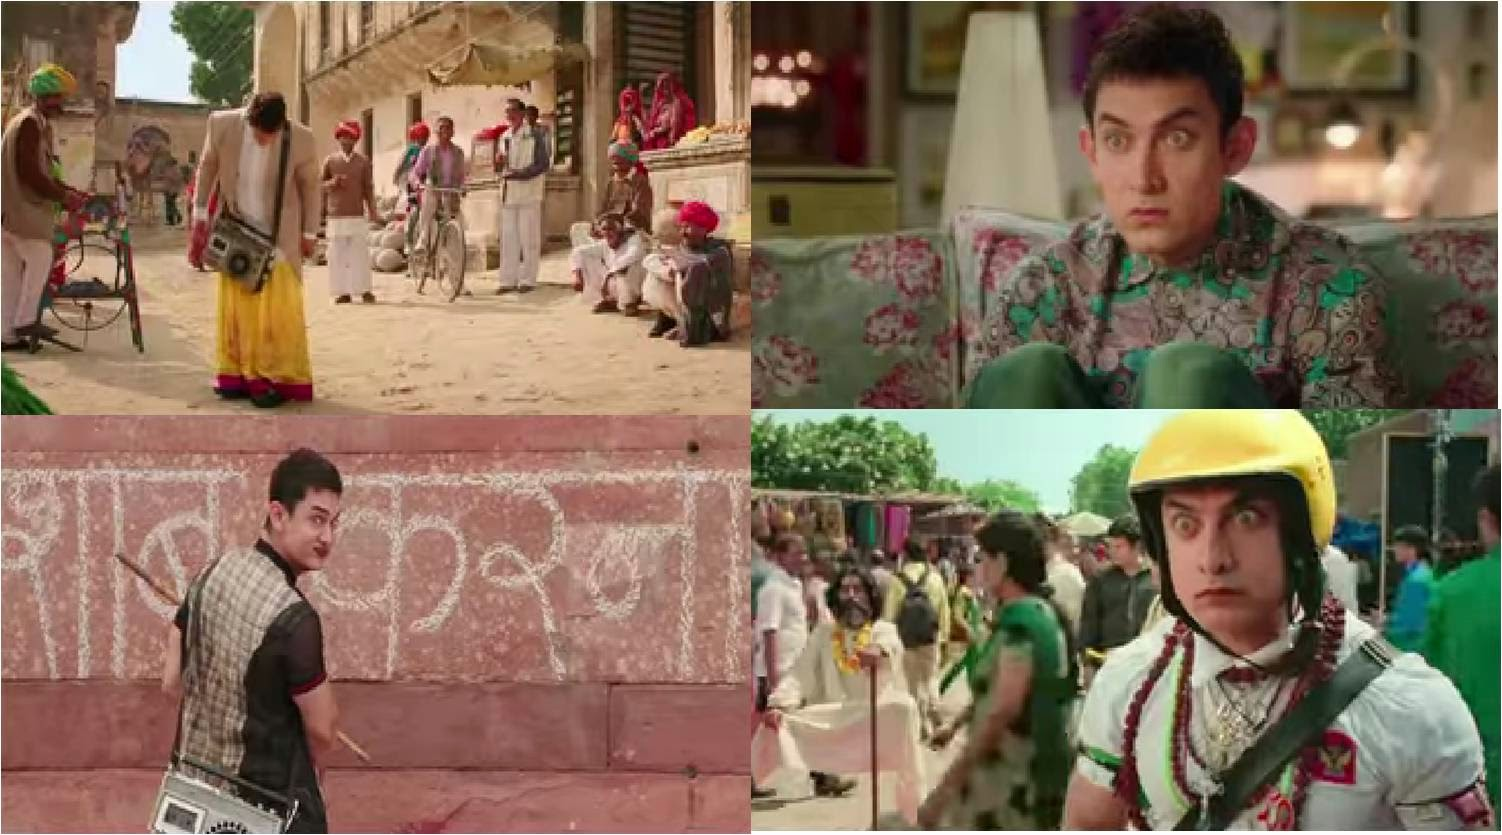 Aamir Khan Looks in PK movie with lehanga over coat, transister, wide eyes, paan (betel leaf), helmet and ornaments of different religions